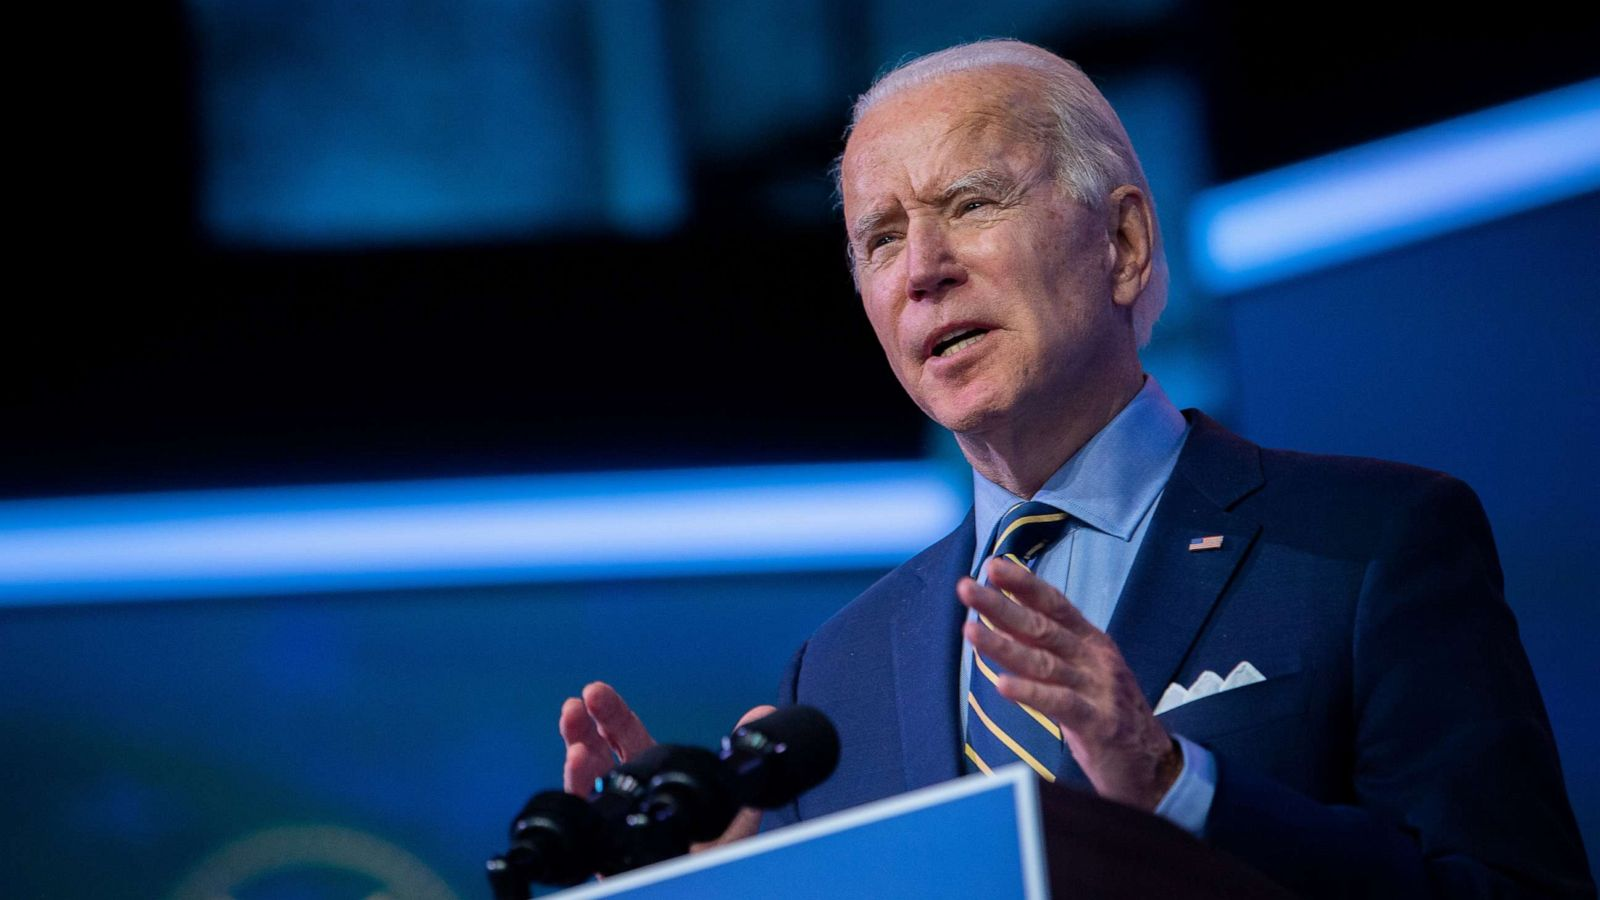 Michael Brown on How Christian Conservatives Should Respond to the Biden Administration